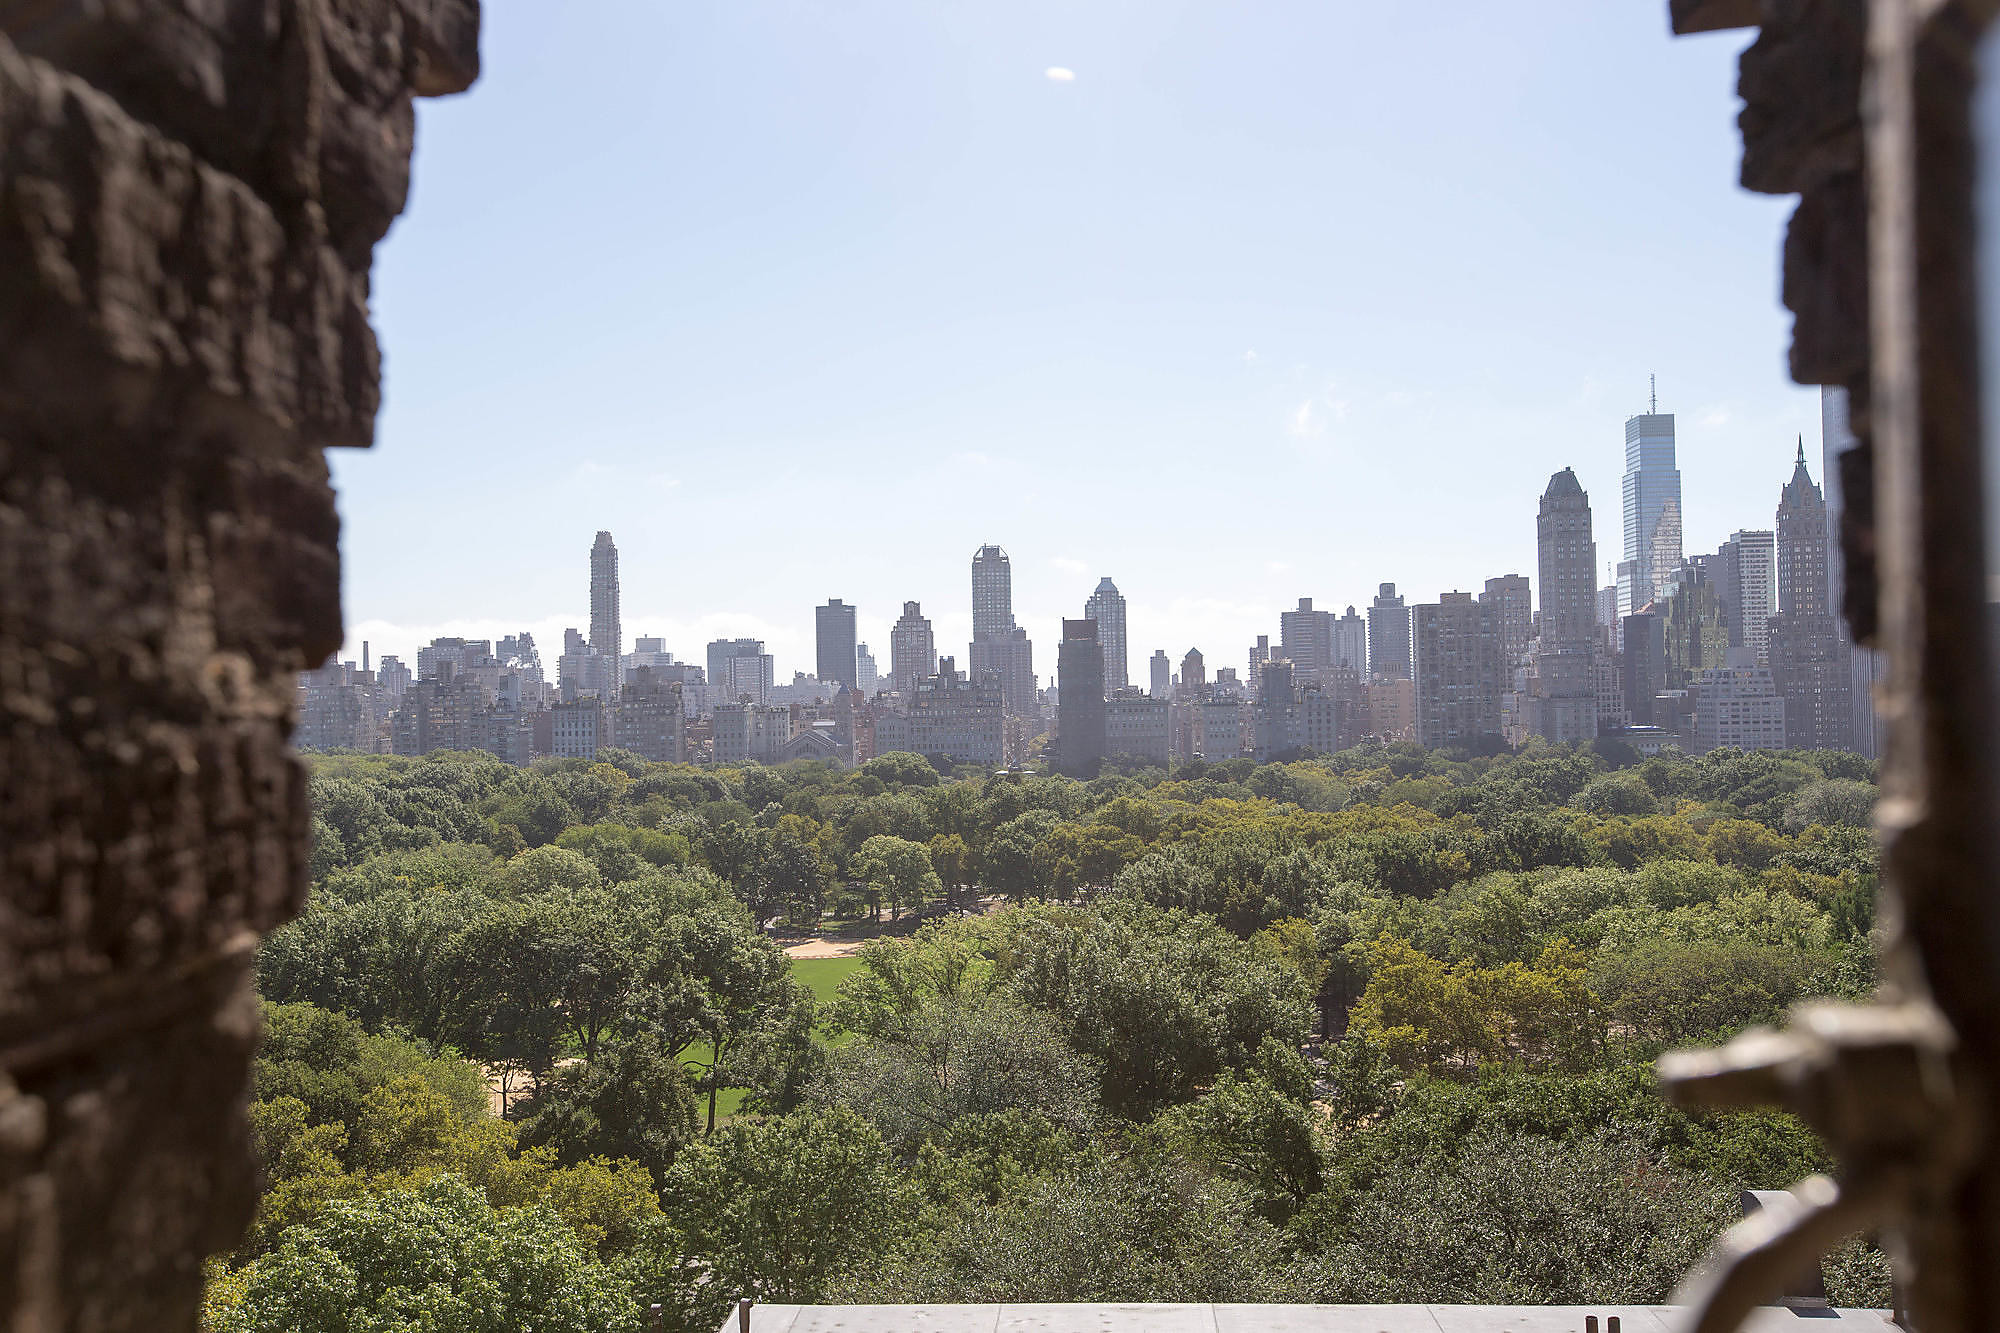 Central Park view from hallway at West Side YMCA in New York City.